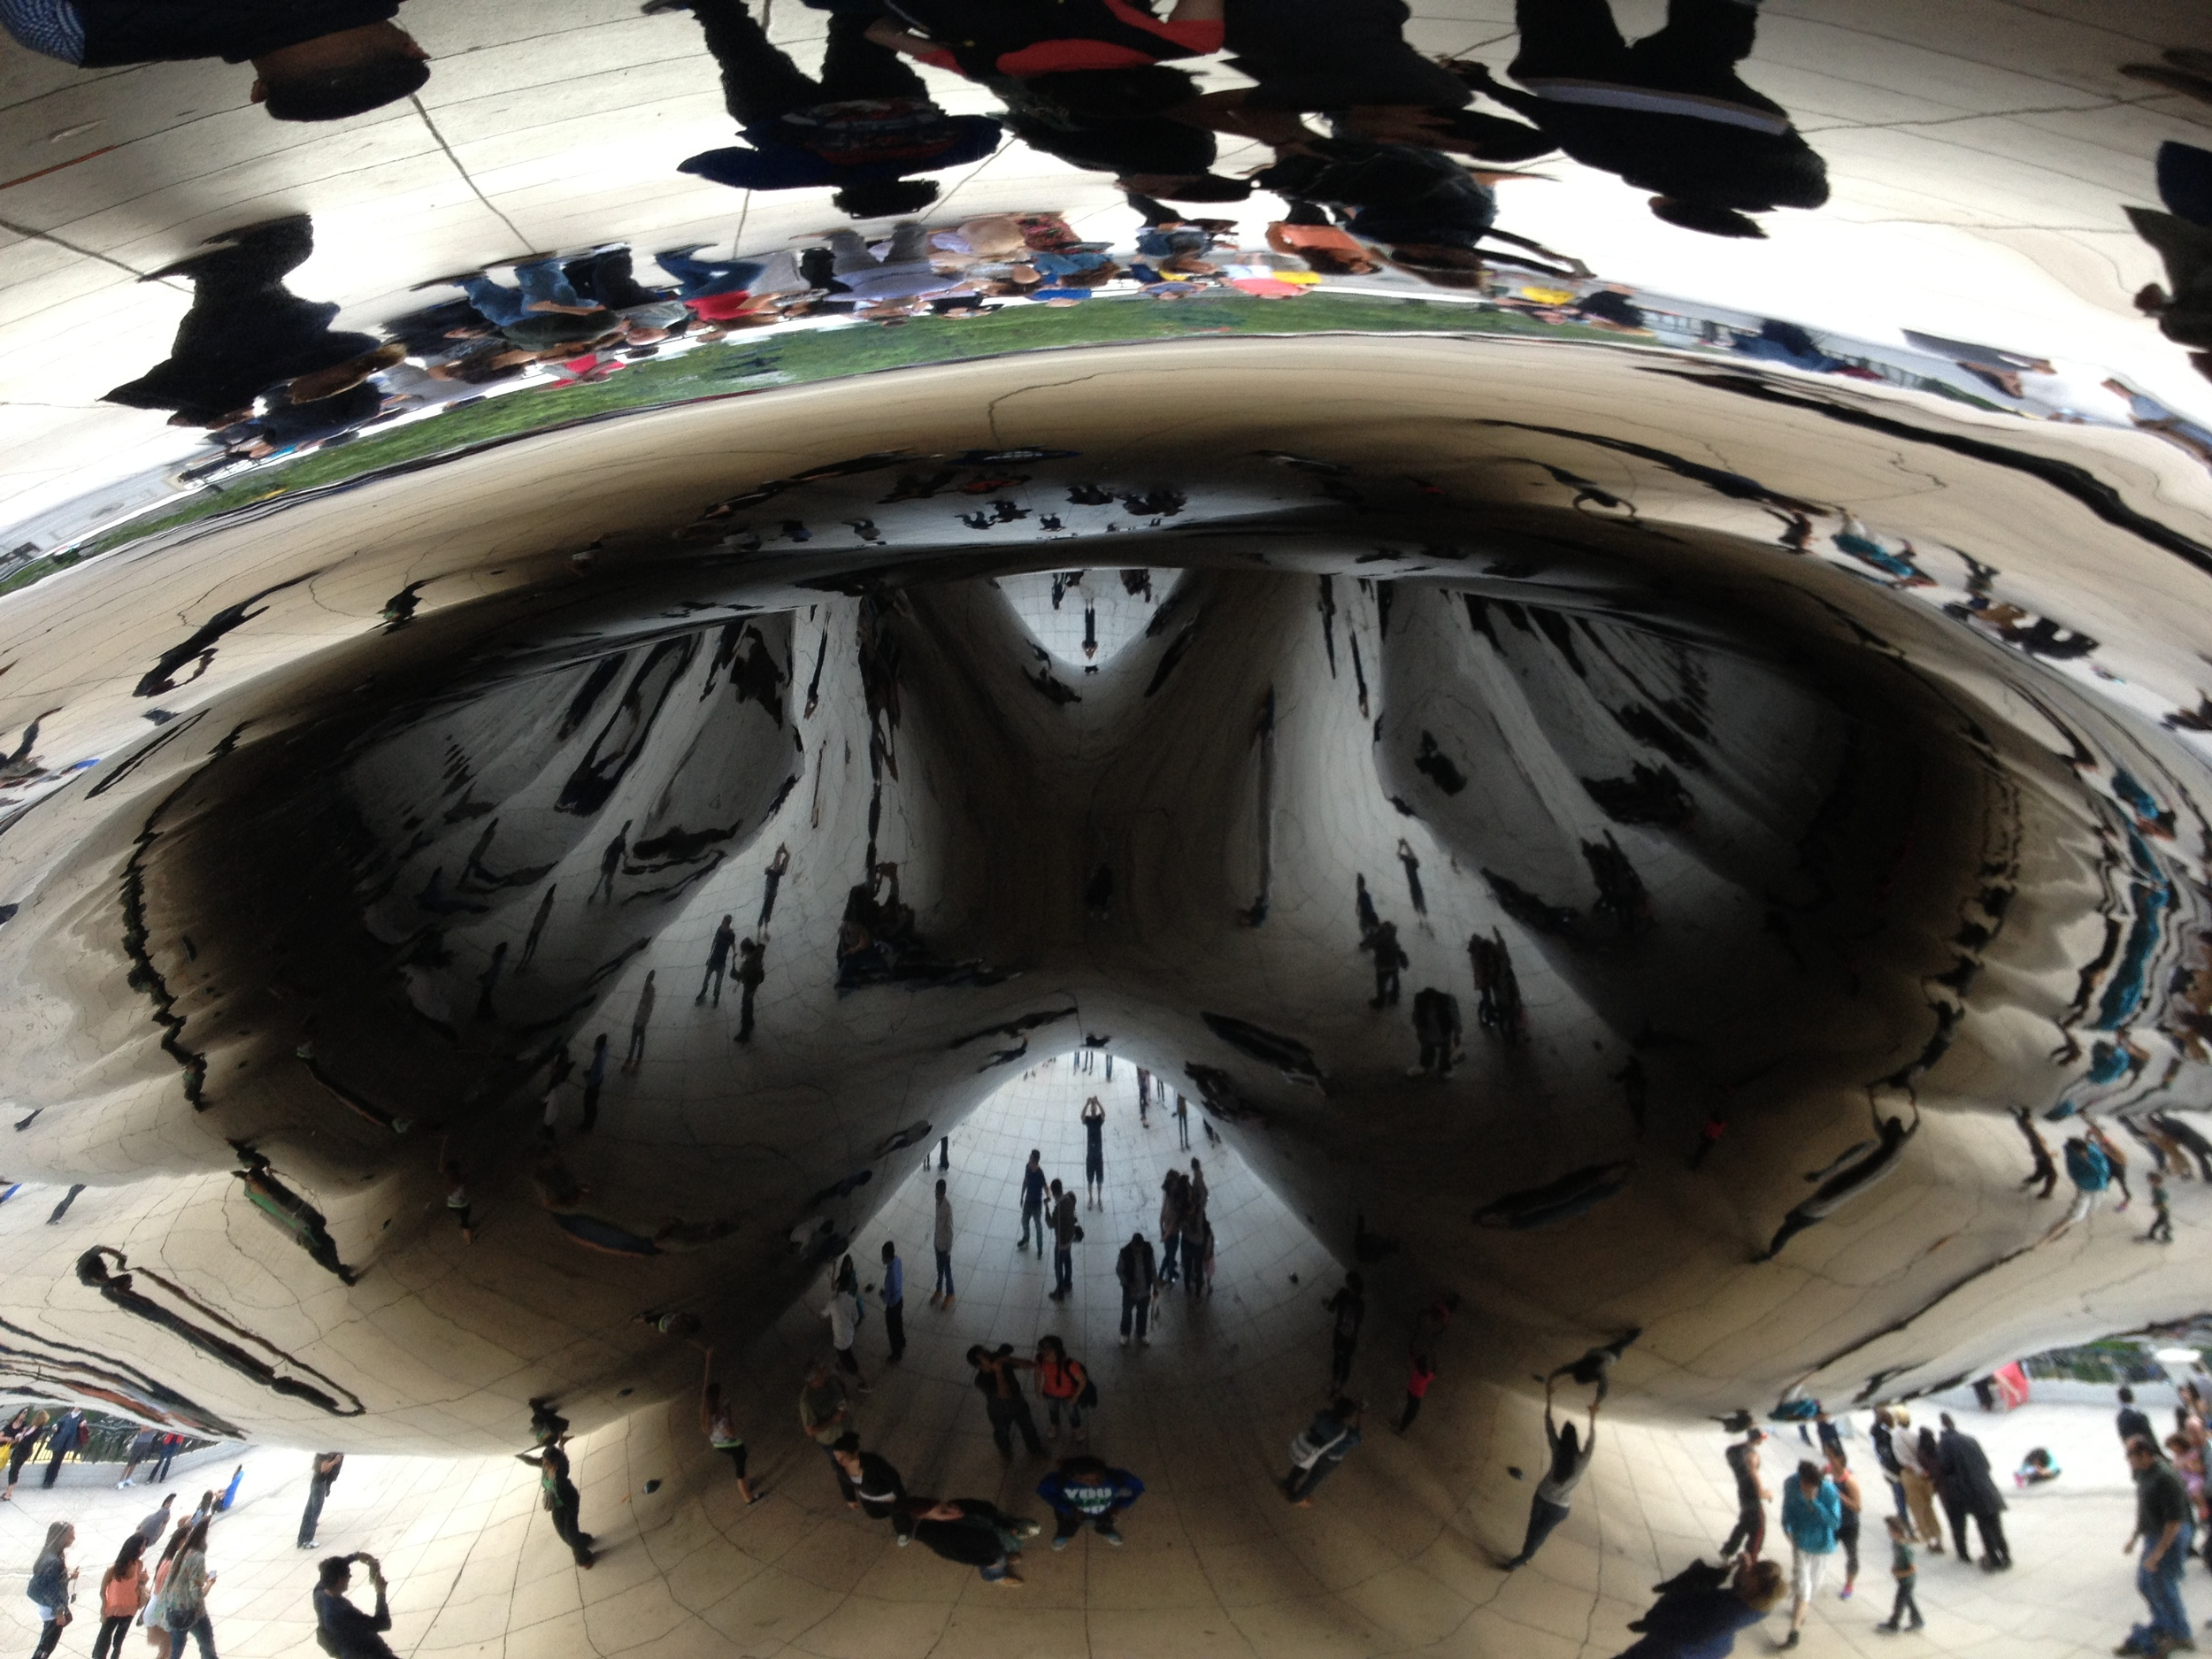 Cloud Gate aka The Bean is by Anish Kapoor and was installed in Chicago's Millennium Park in 2006. This giant bean-shaped polished stainless steel sculpture attracts thousands of visitors everyday, who love to look at and manipulate their reflections in the concave and convex mirror surface.  Everyone is smiling and laughing; people of all ages and from around the world are sharing the space in and around this work of art.  The public is engaged, which is what good public art should do.